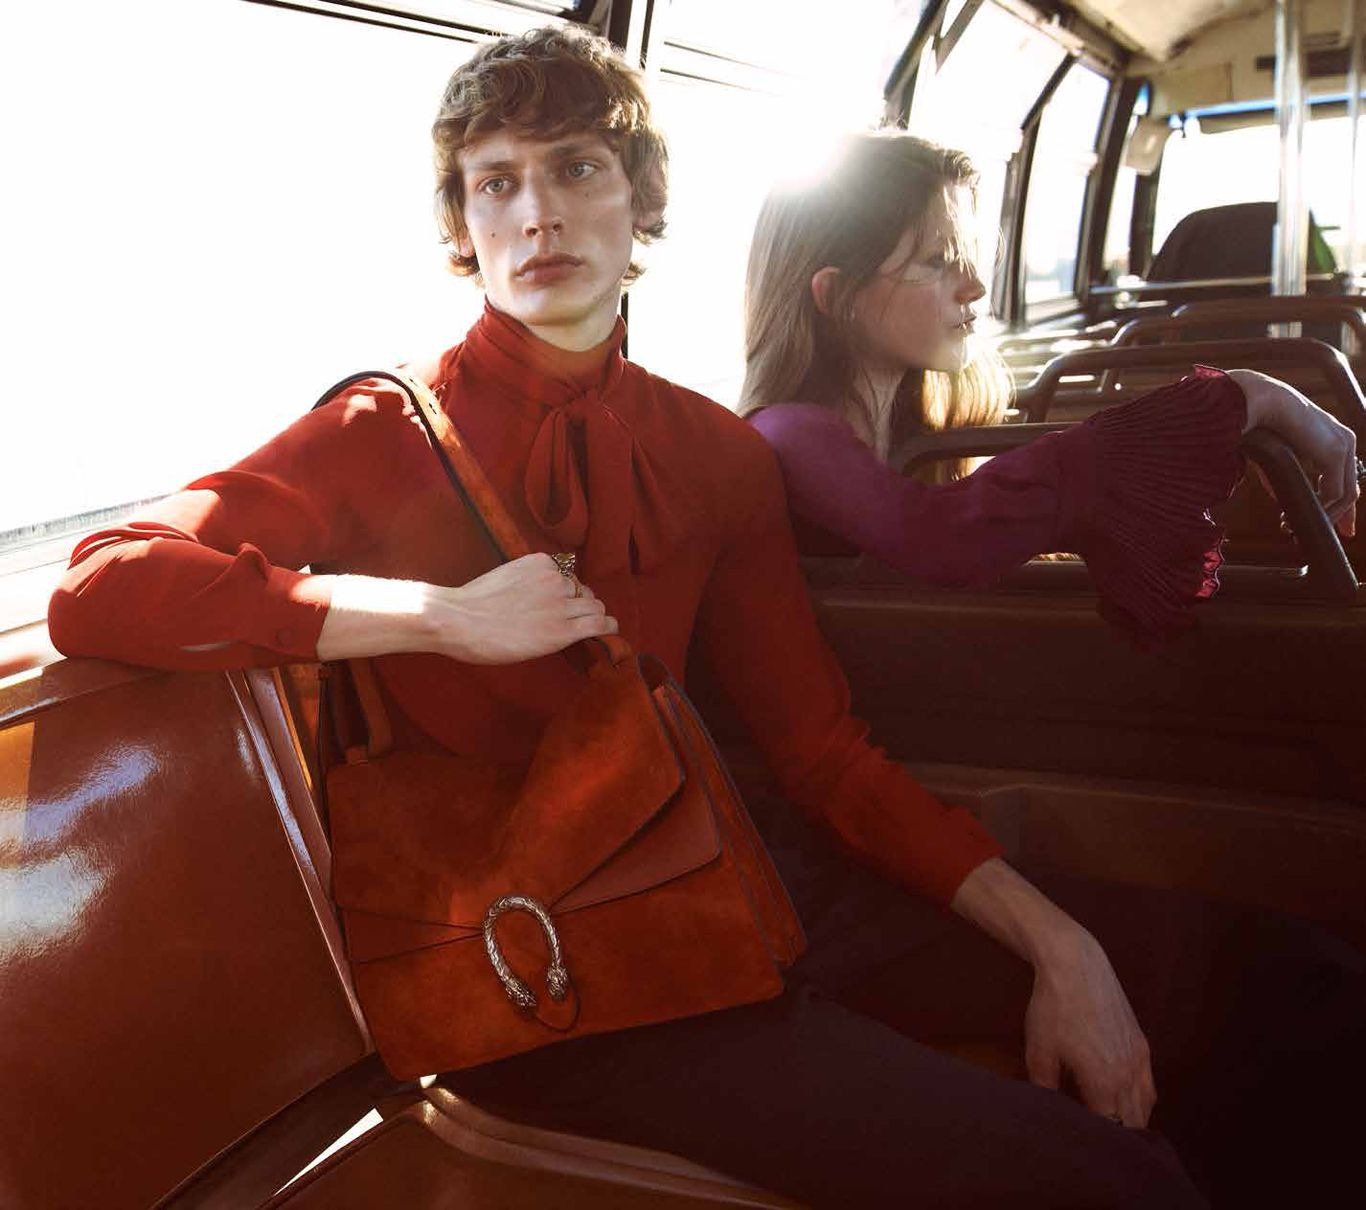 Discussion on this topic: Guccis New Ads Are Further Proof of , guccis-new-ads-are-further-proof-of/